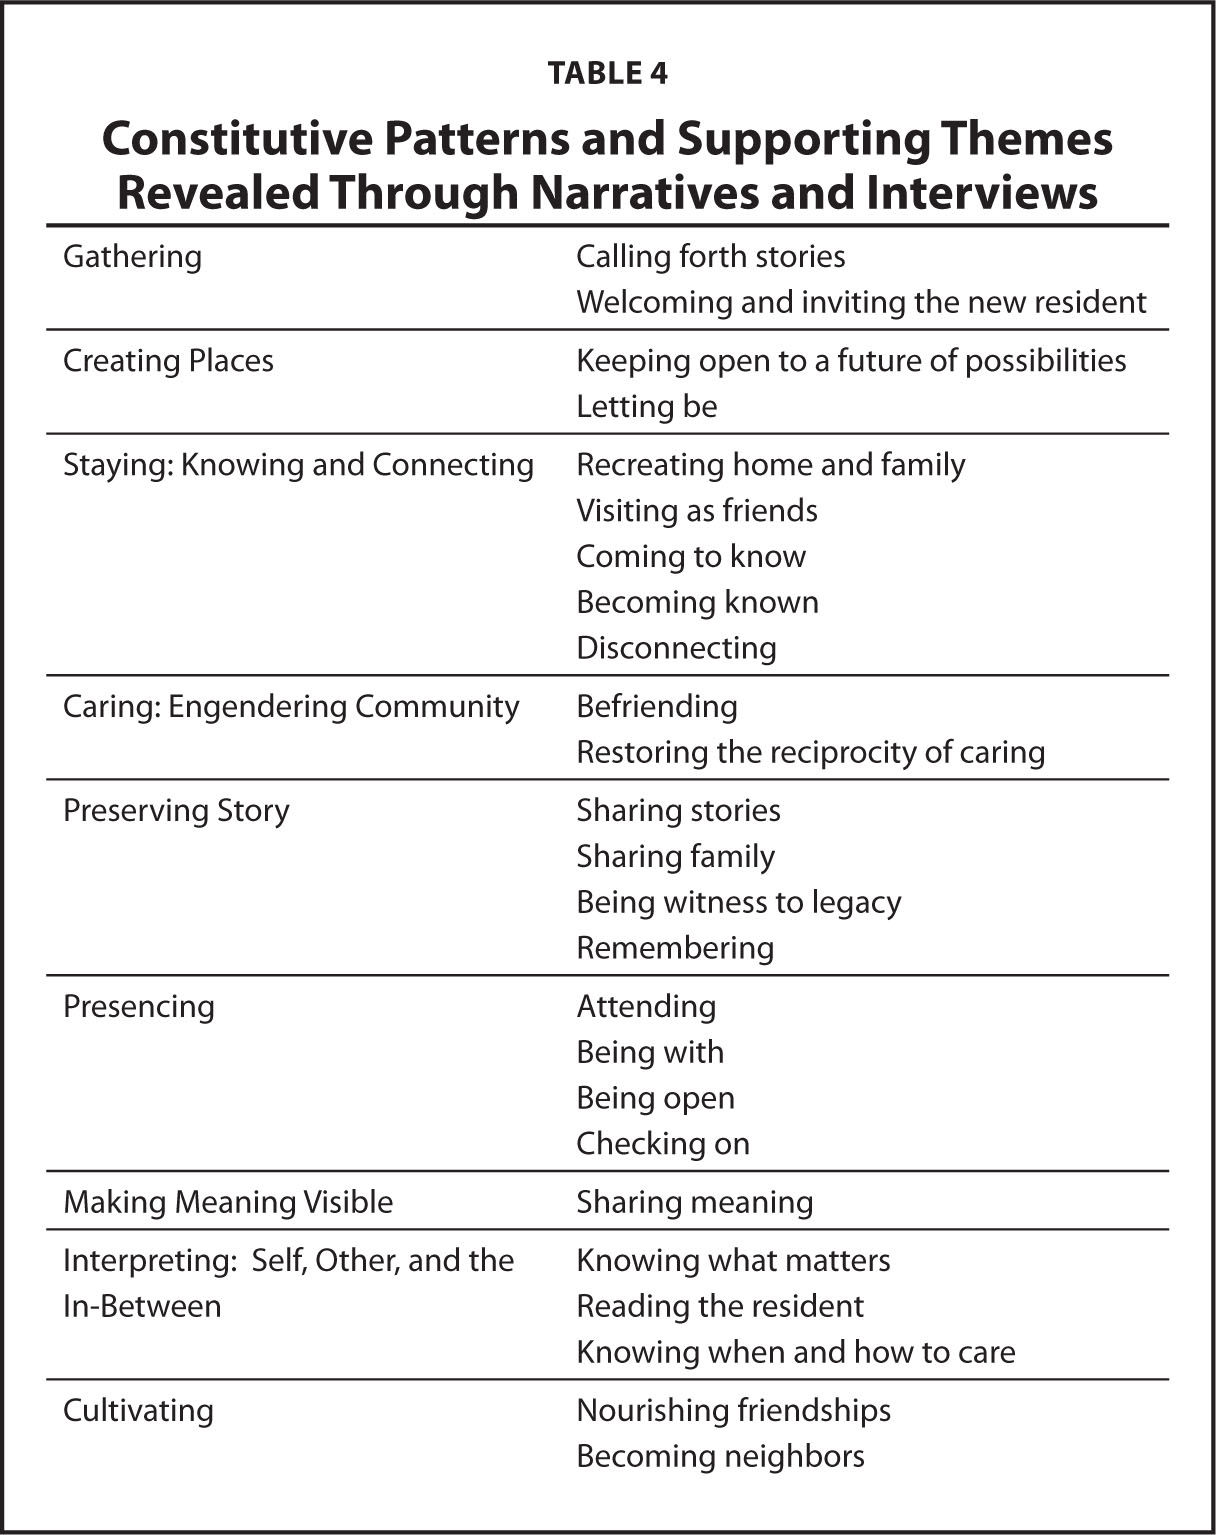 Constitutive Patterns and Supporting Themes Revealed Through Narratives and Interviews